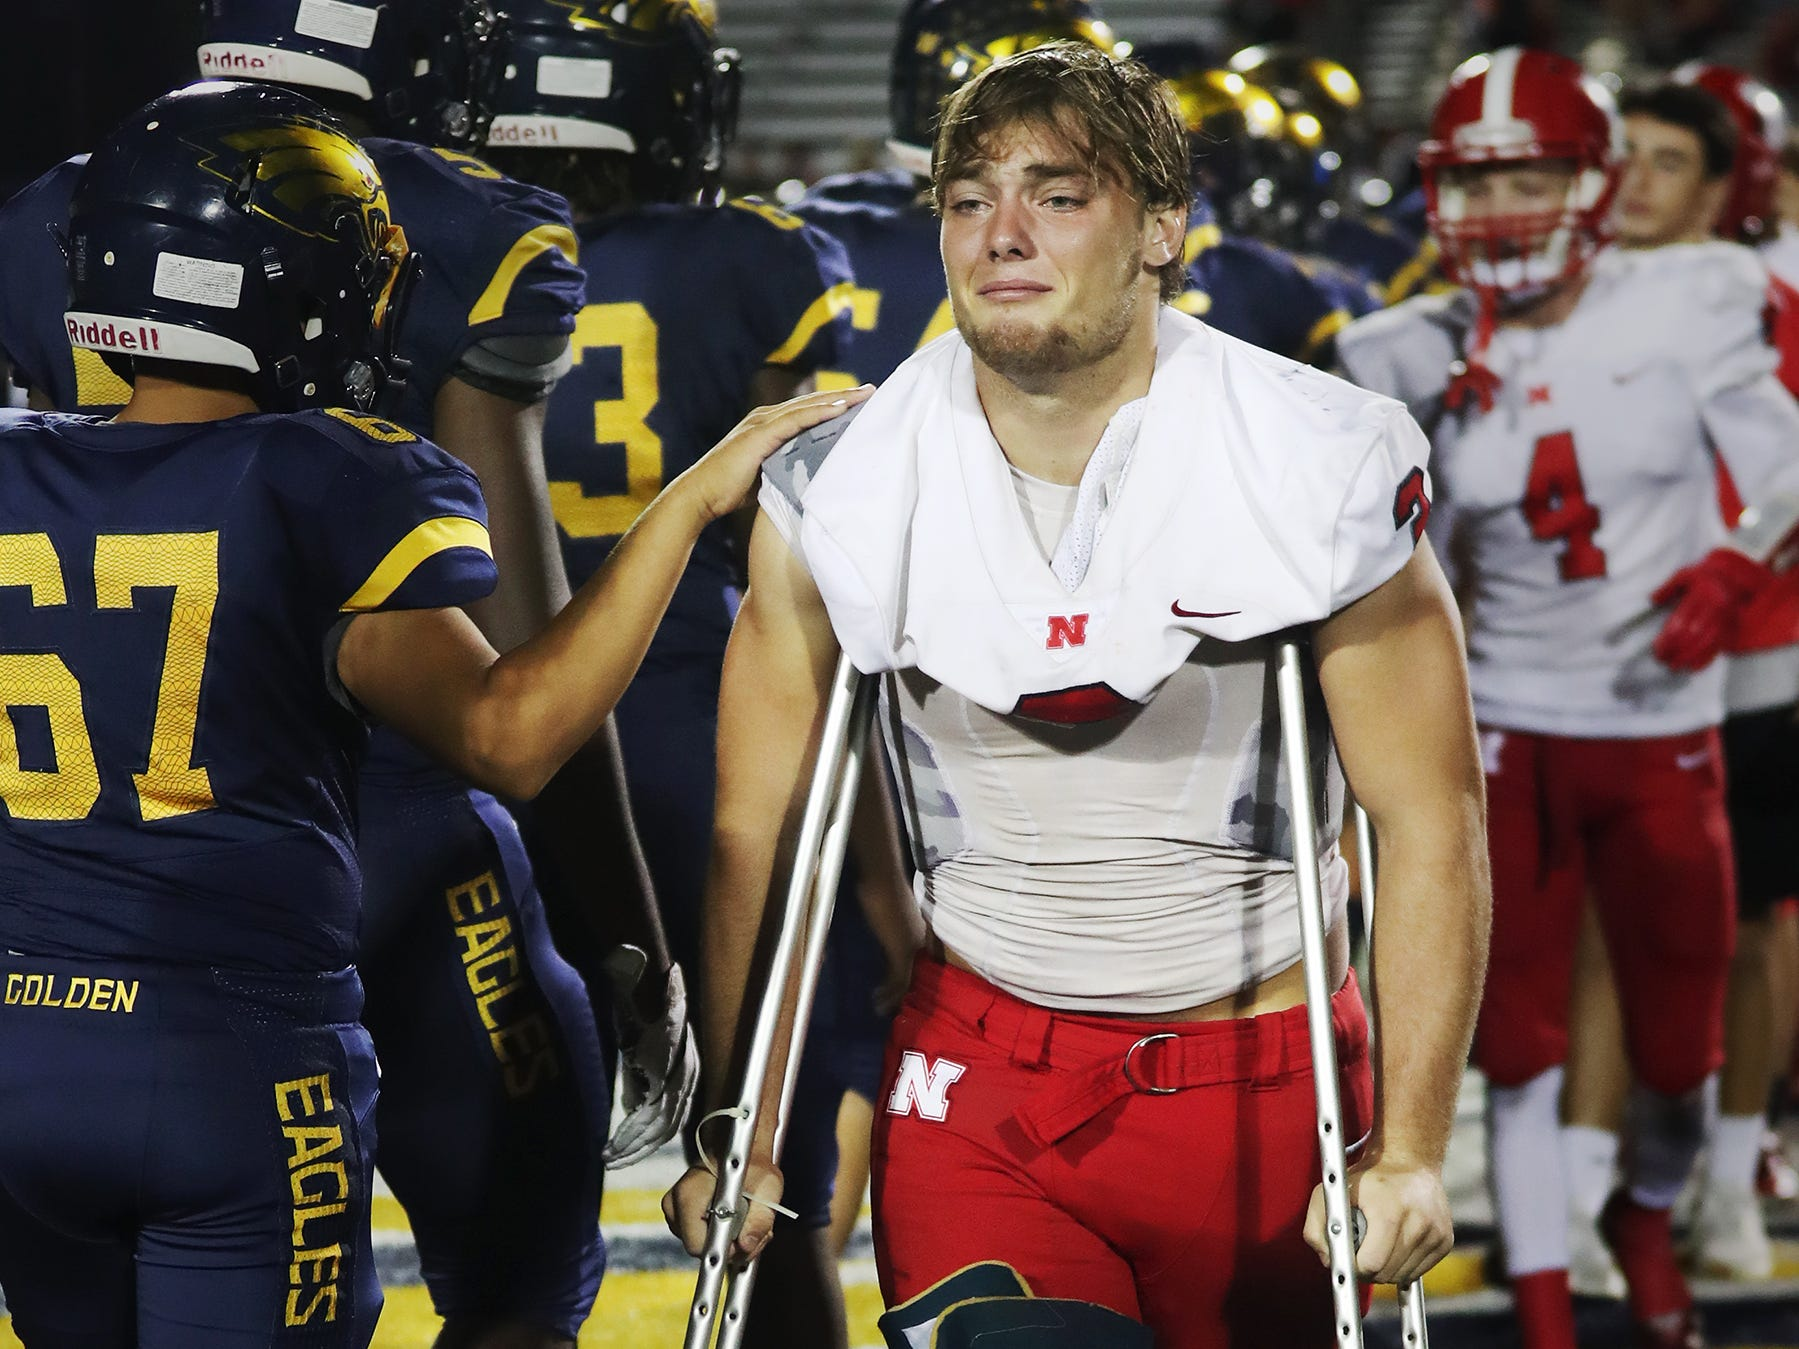 North Fort Myers High School's Hunter Kobylanski leaves the field after losing to Naples recently in the Class 6A regional final at Staver Field in Naples. Naples beat North 23-0. Kobylanski got injured in the first quarter.